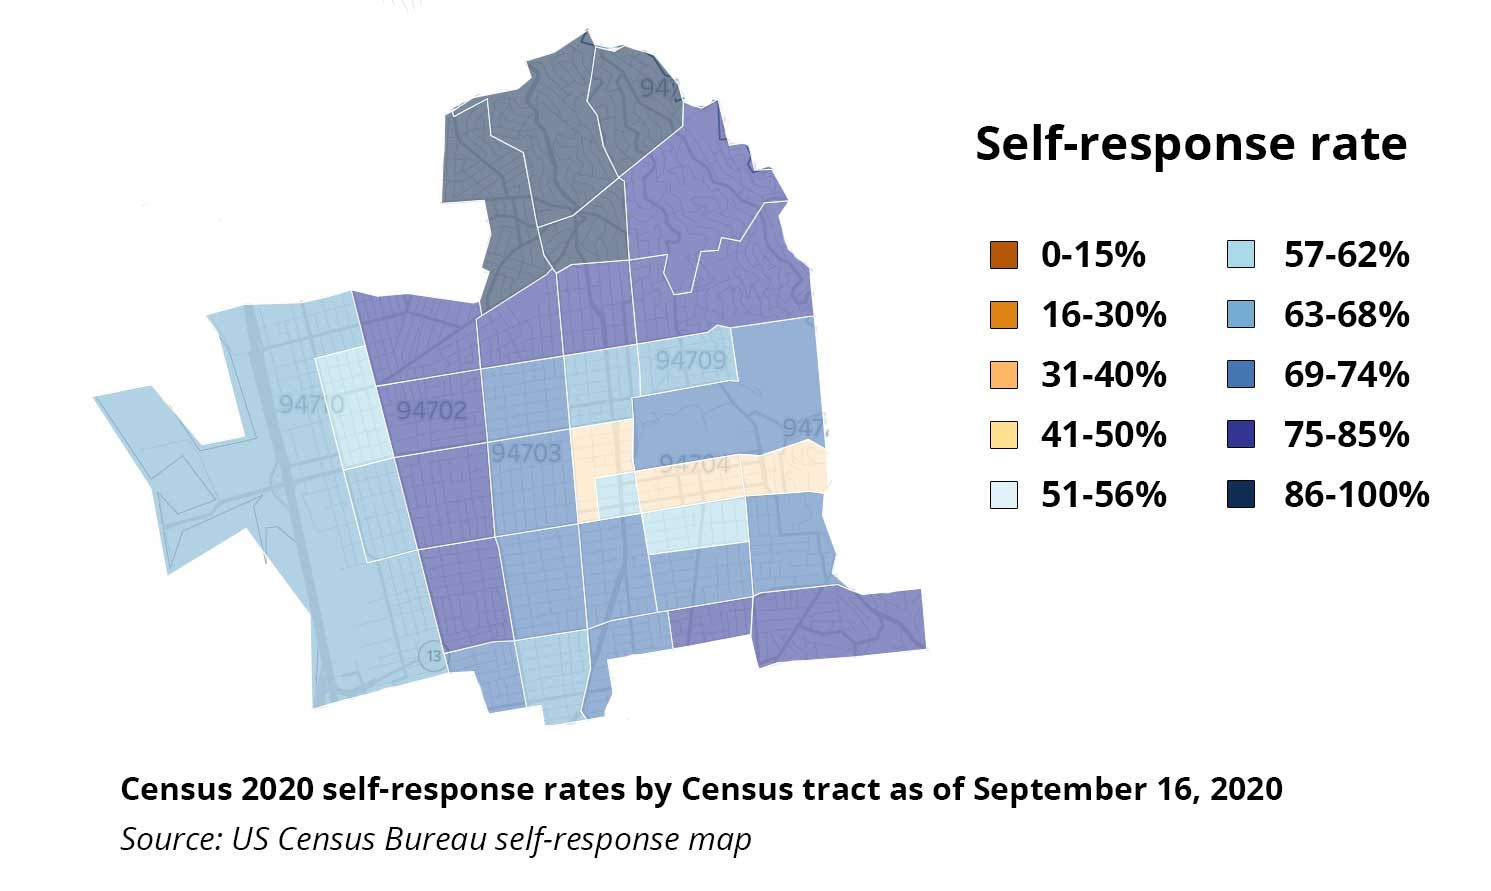 City of Berkeley Self-Response Rates as of September 16, 2020